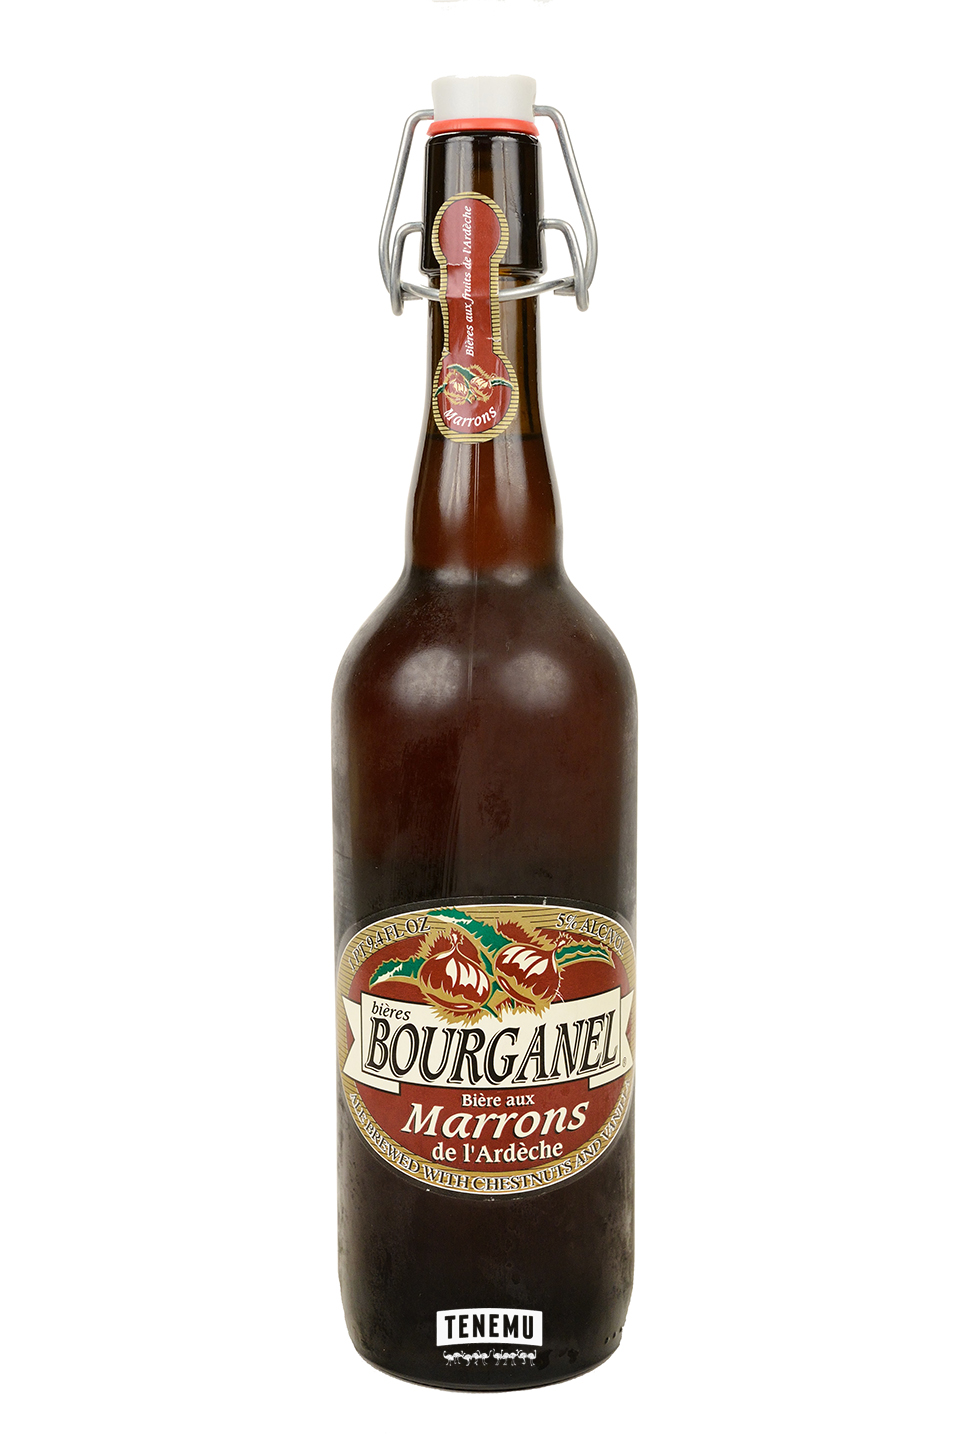 Brasserie Bourganel Biere Aux Marrons bottle